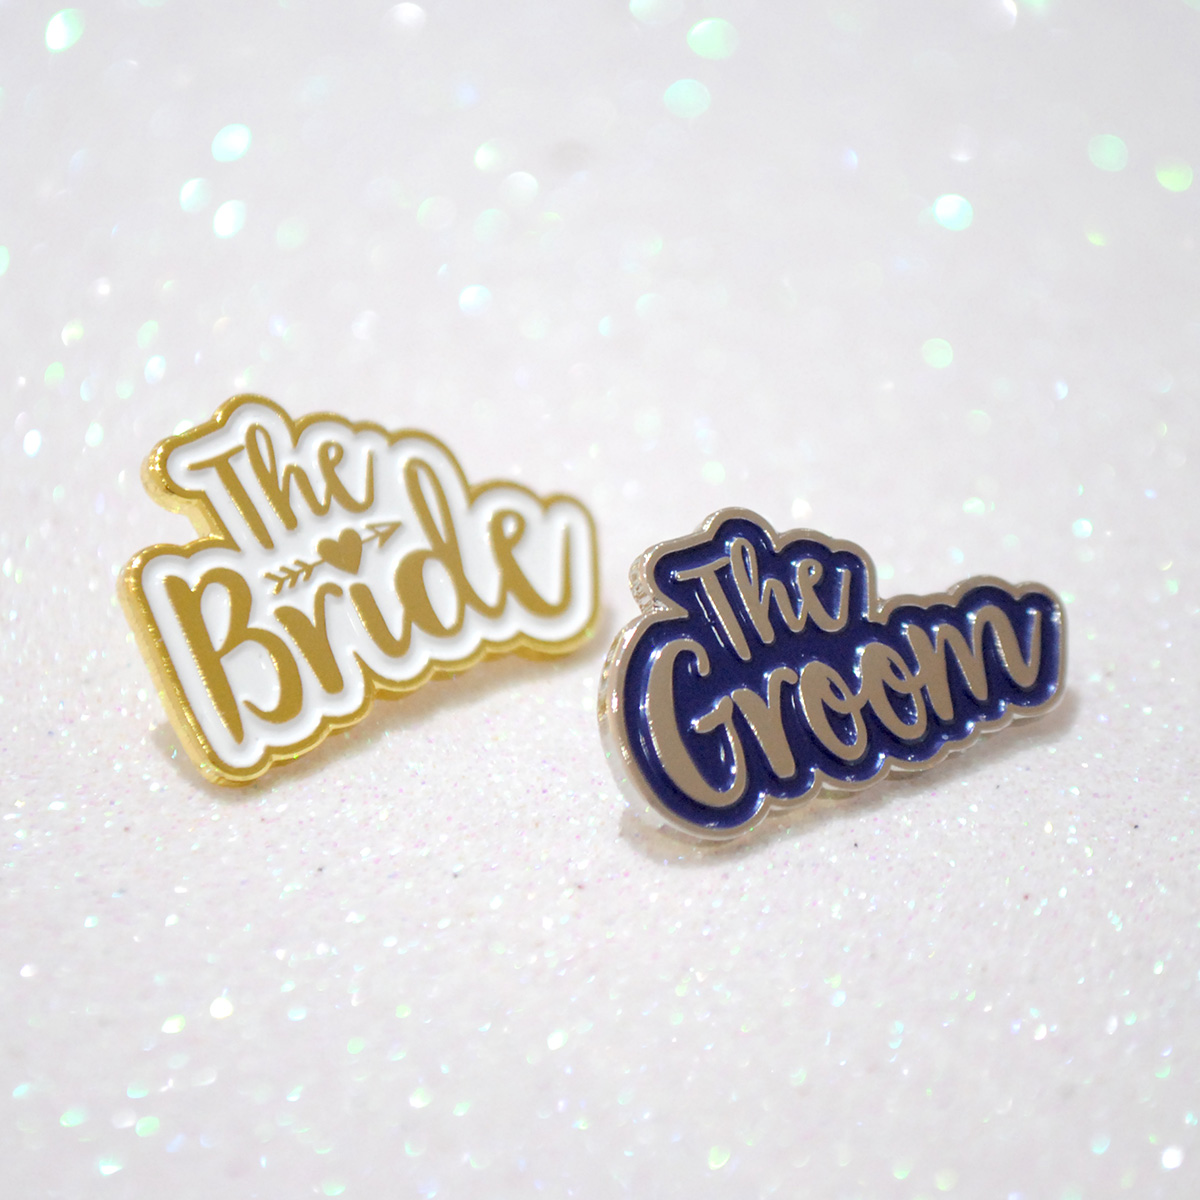 bride and groom enamel lapel pin badges